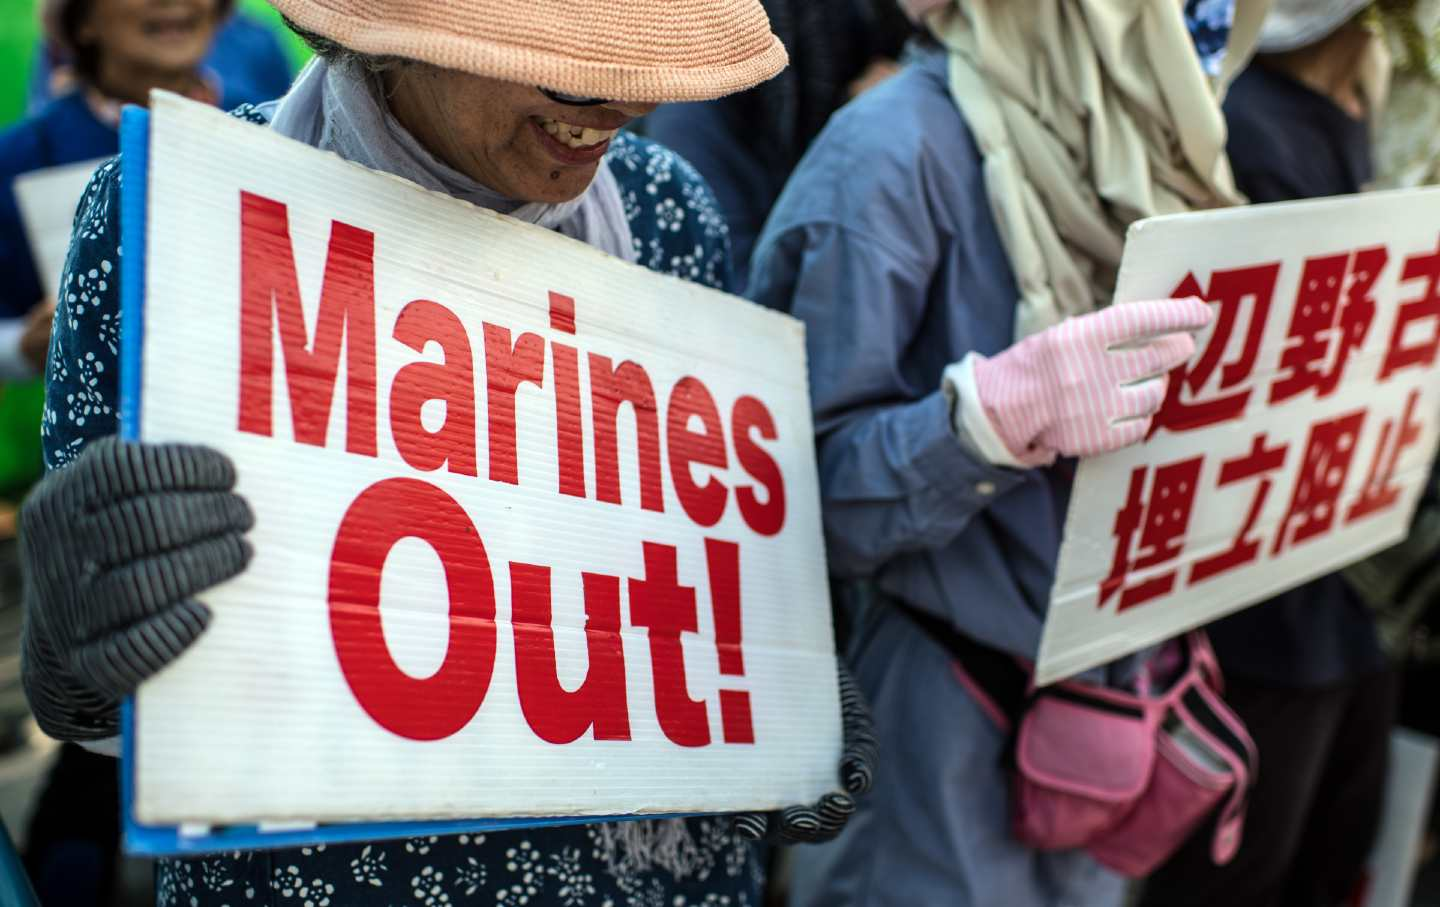 Marines Out